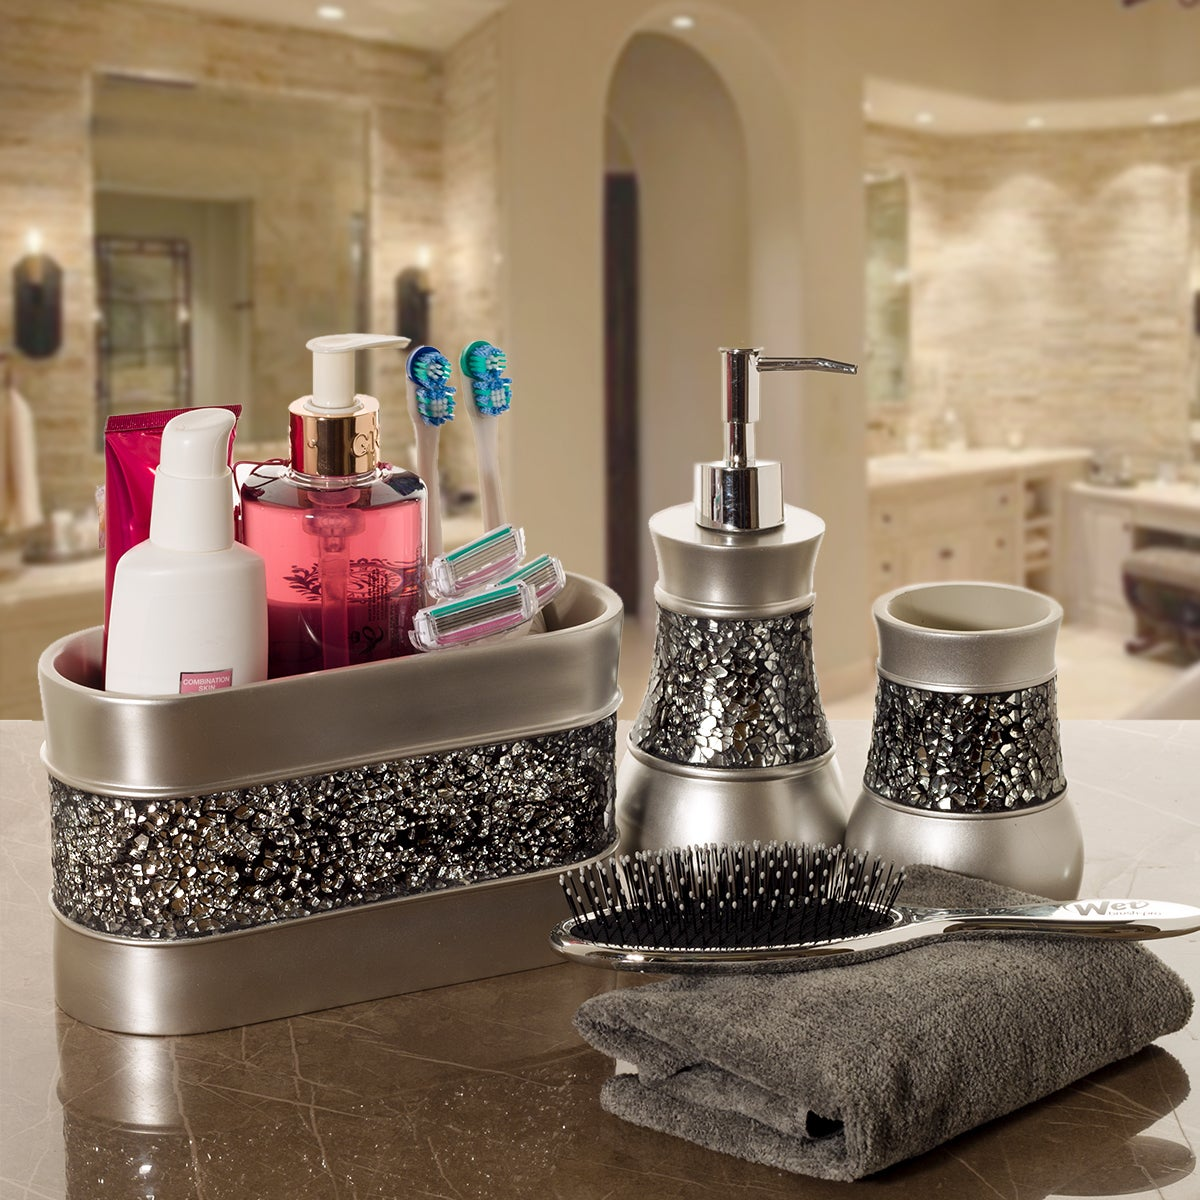 Shop Creative Scents Brushed-nickel 3-compartment Bathroom Organizer - Free Shipping On Orders Over $45 - Overstock.com - 14505747